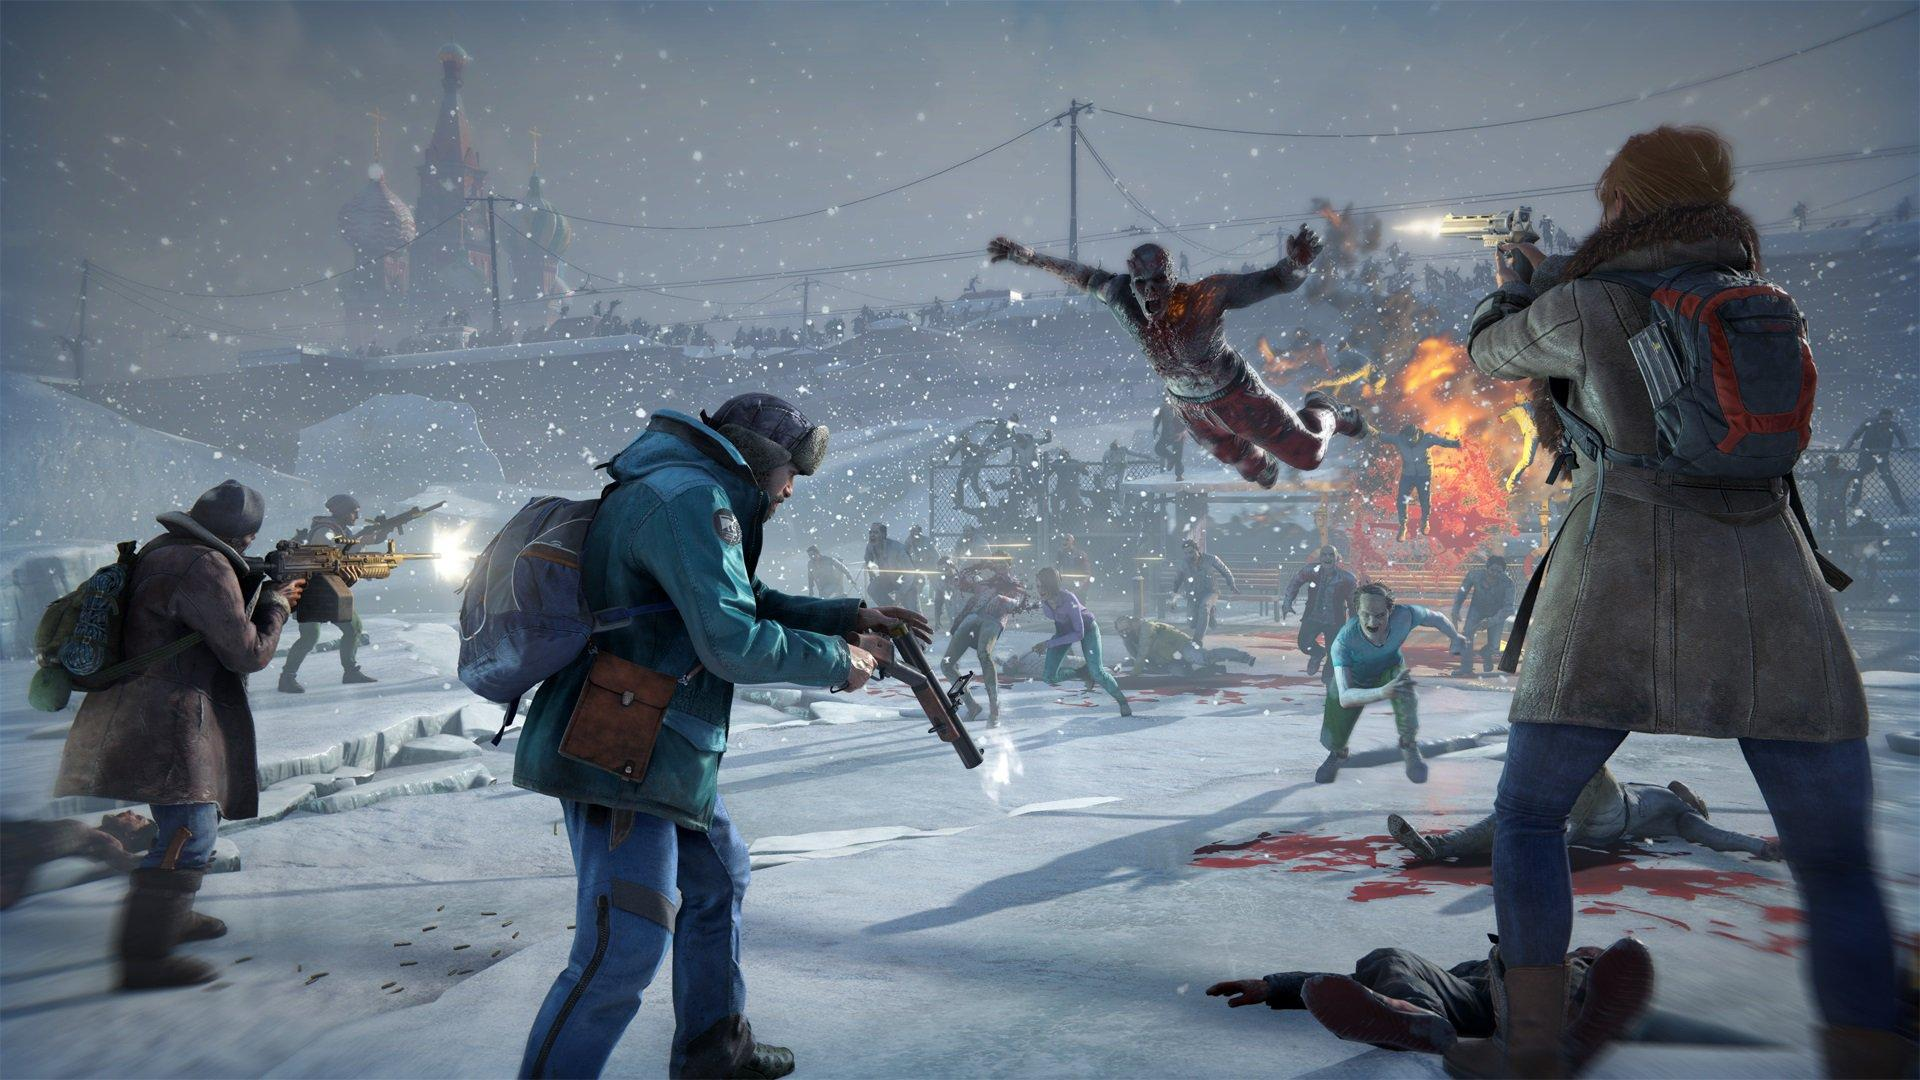 World War Z Trailer Shows Co-Op Gameplay